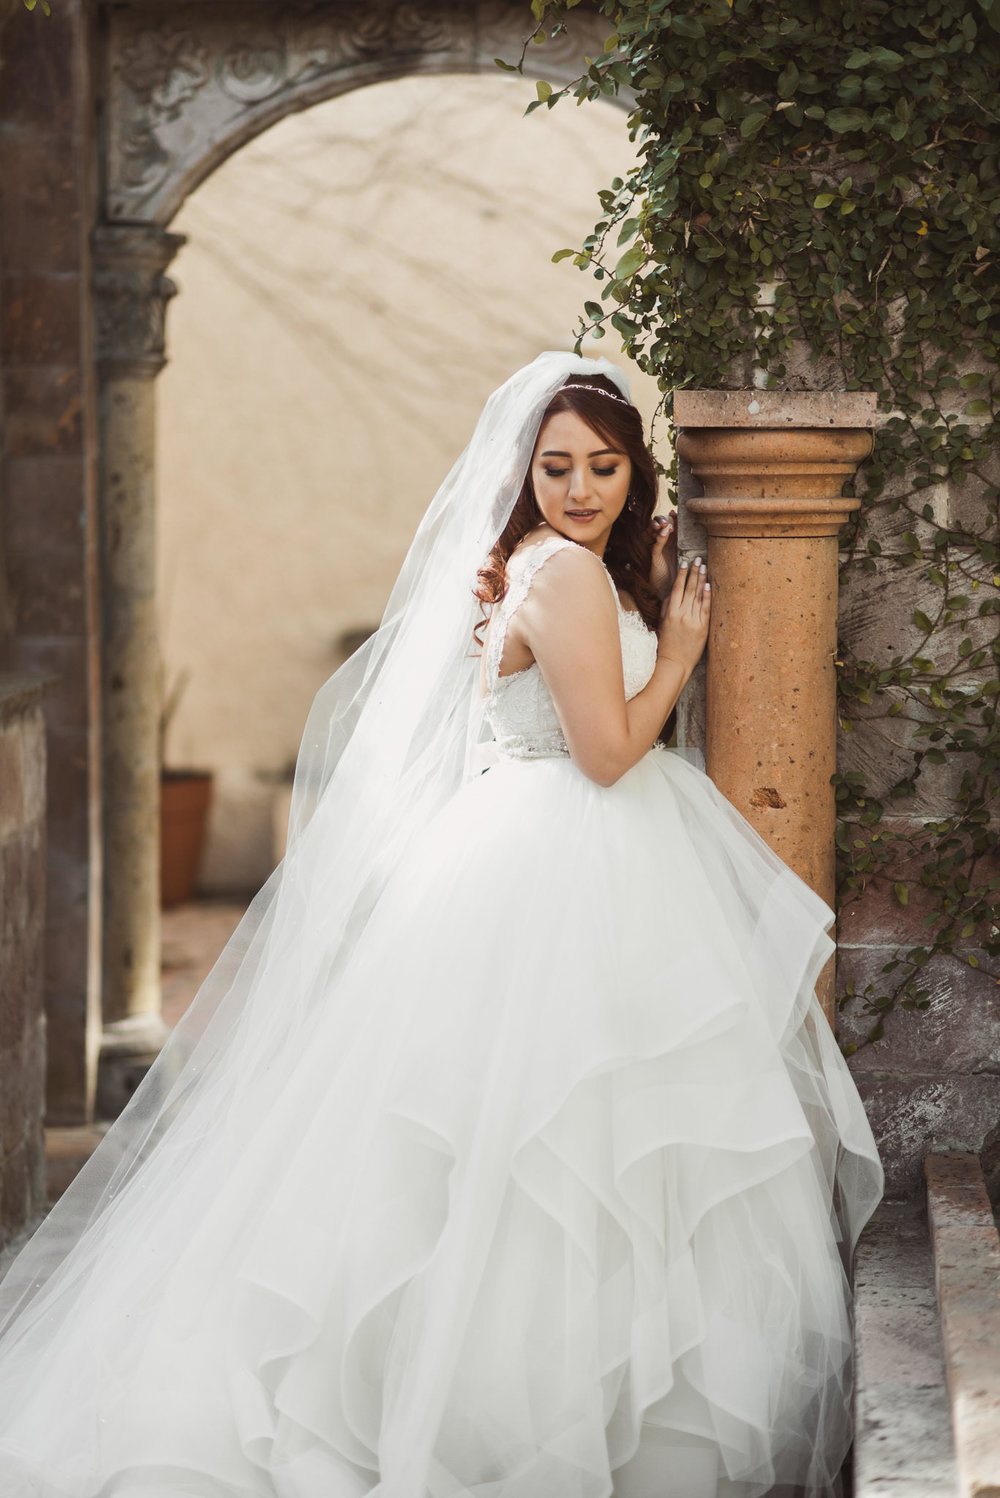 stephanie-bridal-sm-17.jpg